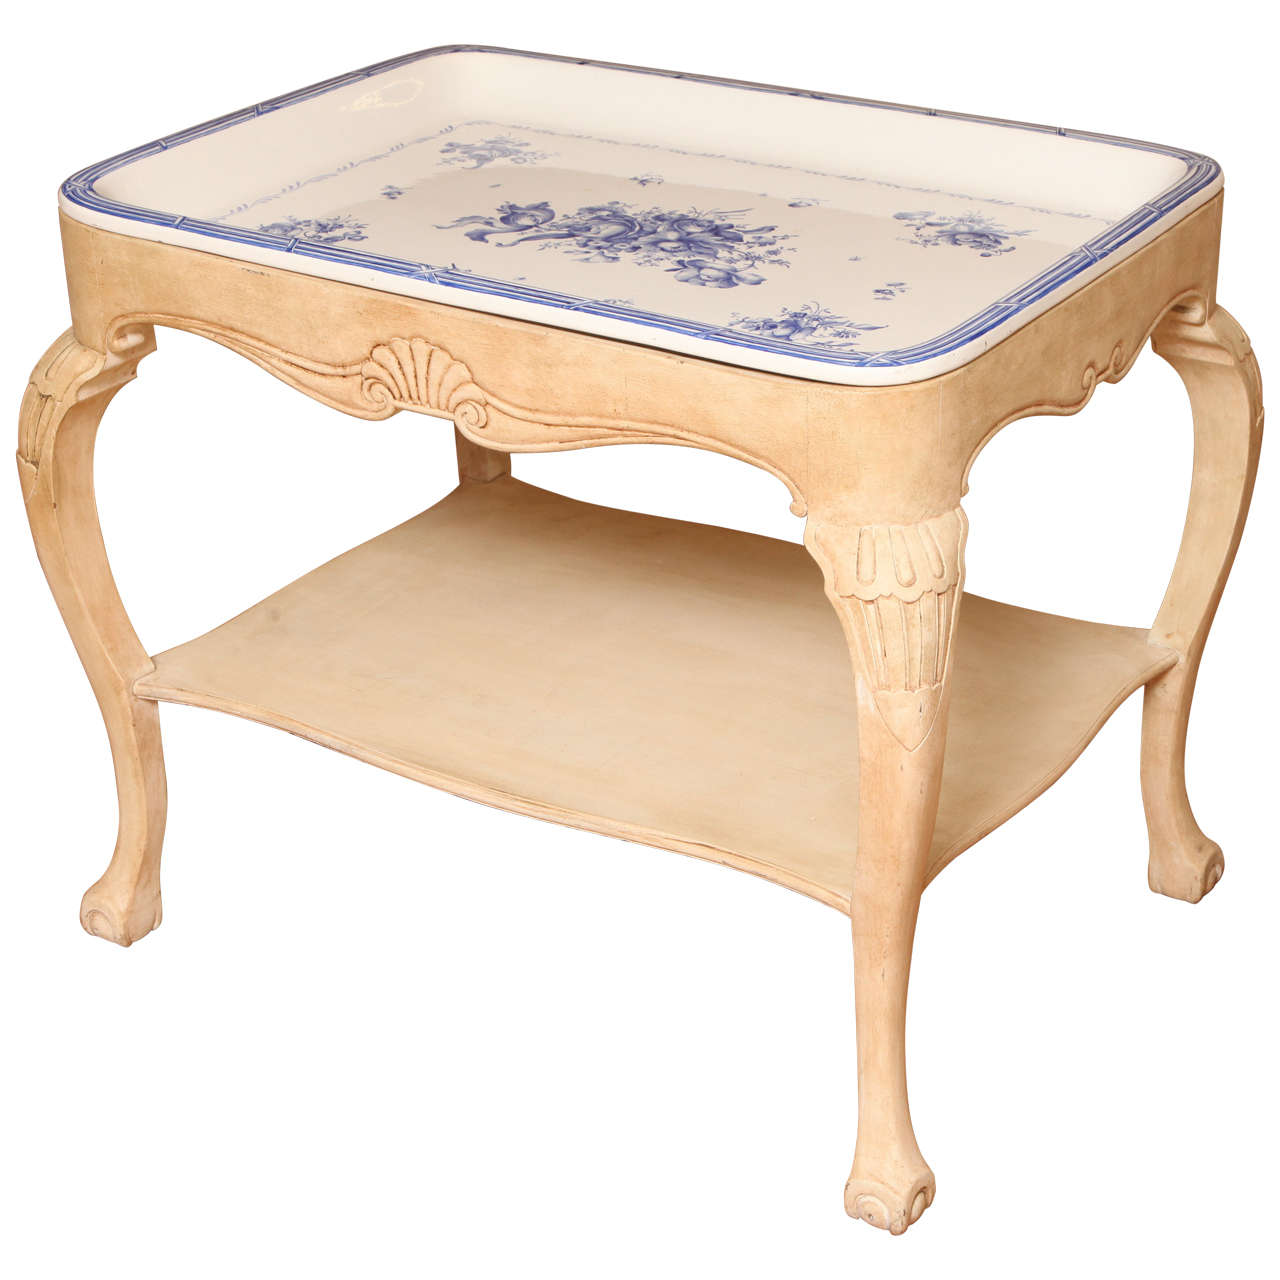 Swedish Rörstrand Blue and White Porcelain Tray Table